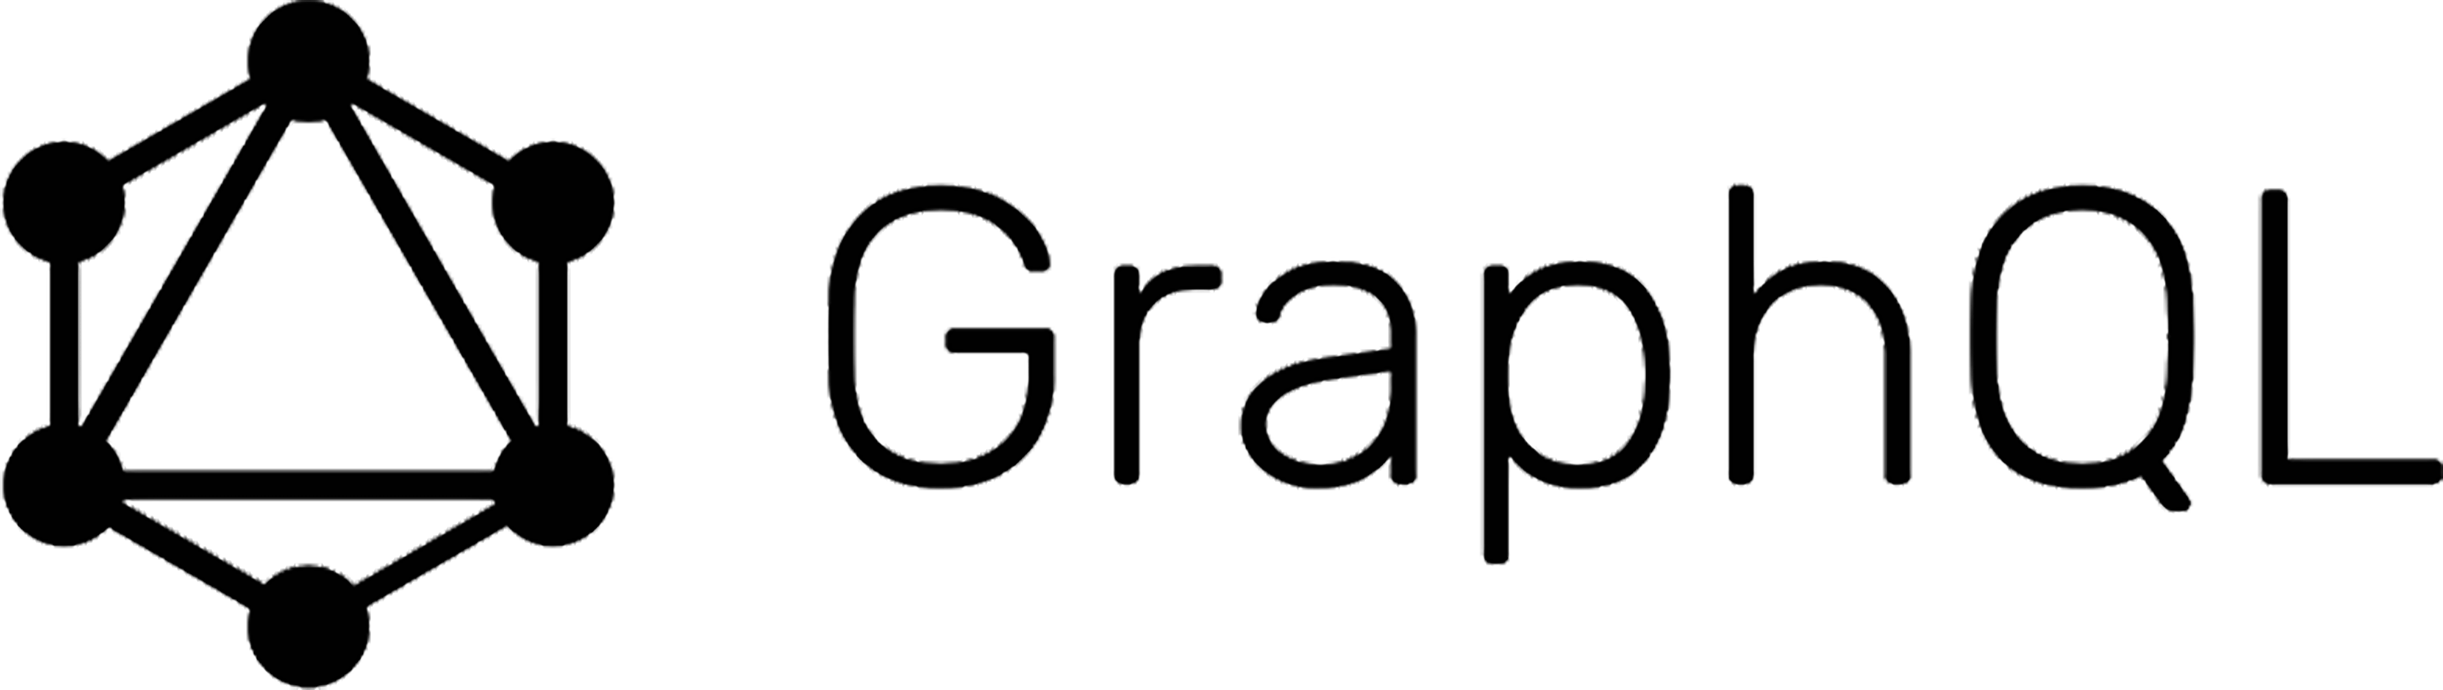 GraphQL, used by The Agile Monkeys